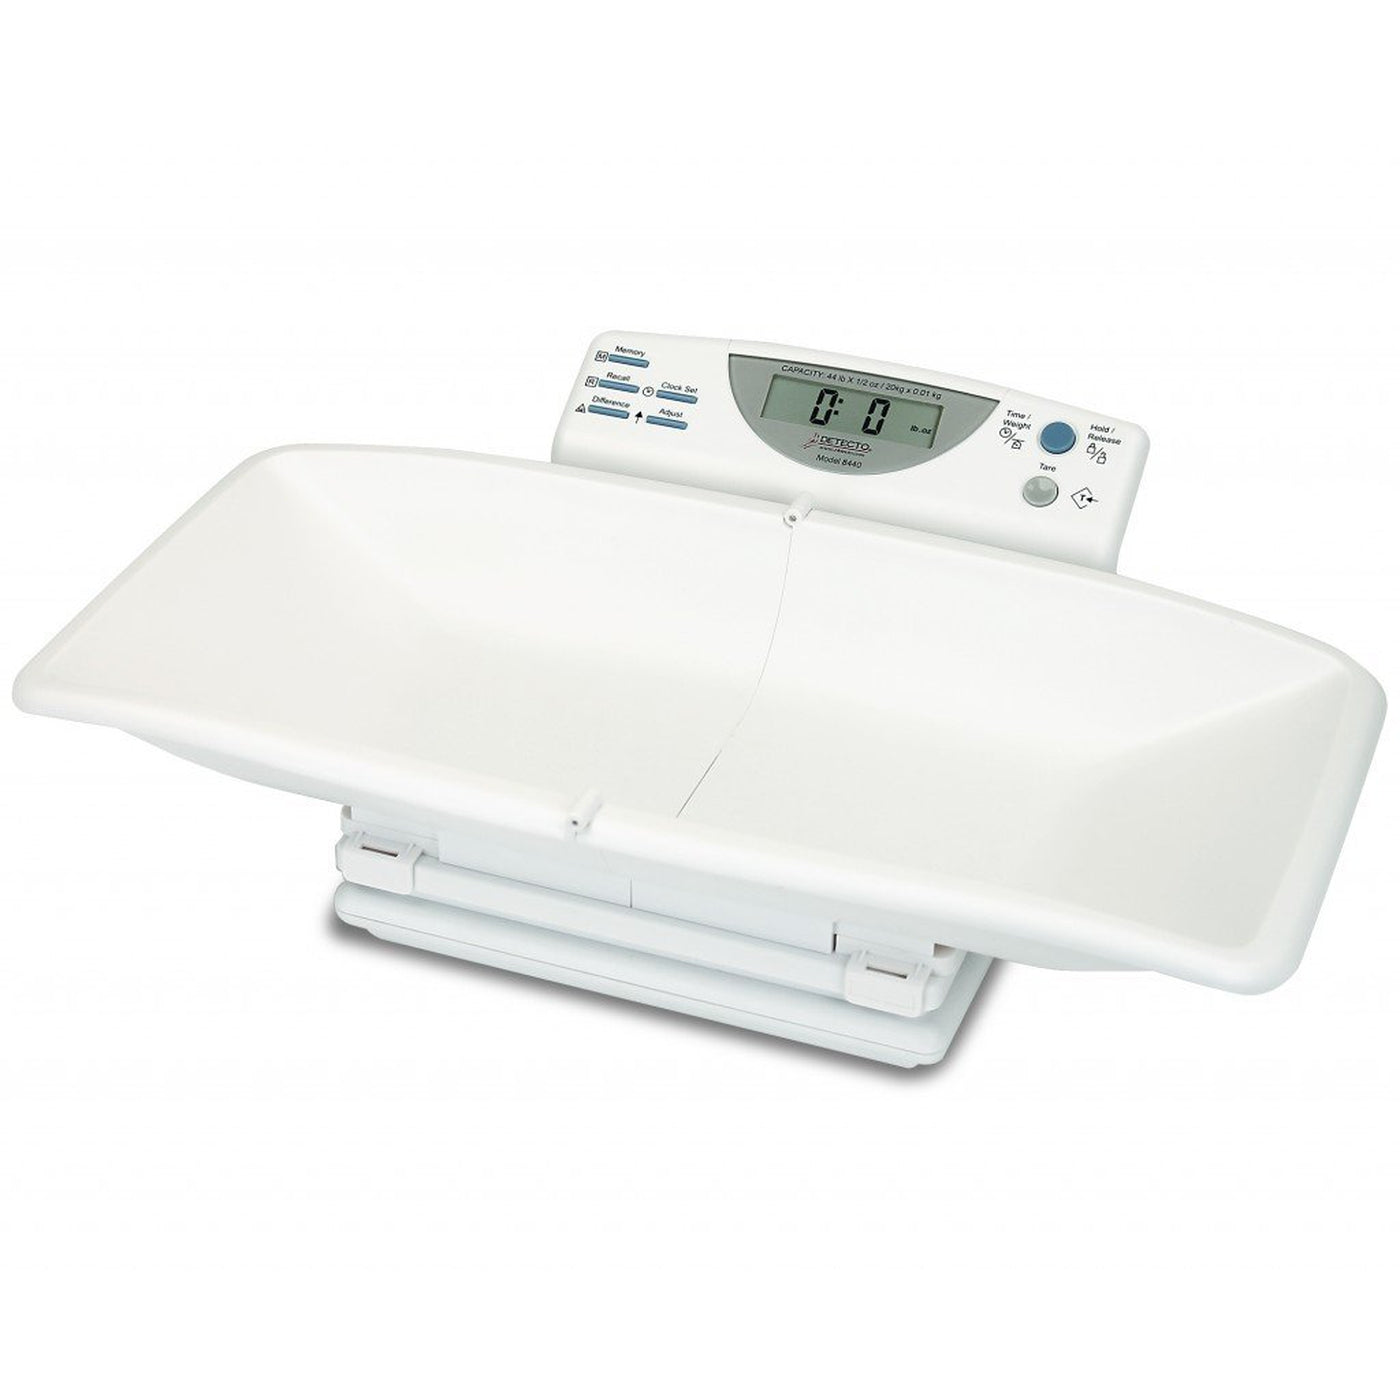 Digital Infant Scale-Laboratory Accessory-Mortech Manufacturing Company Inc. Quality Stainless Steel Autopsy, Morgue, Funeral Home, Necropsy, Veterinary / Anatomy, Dissection Equipment and Accessories